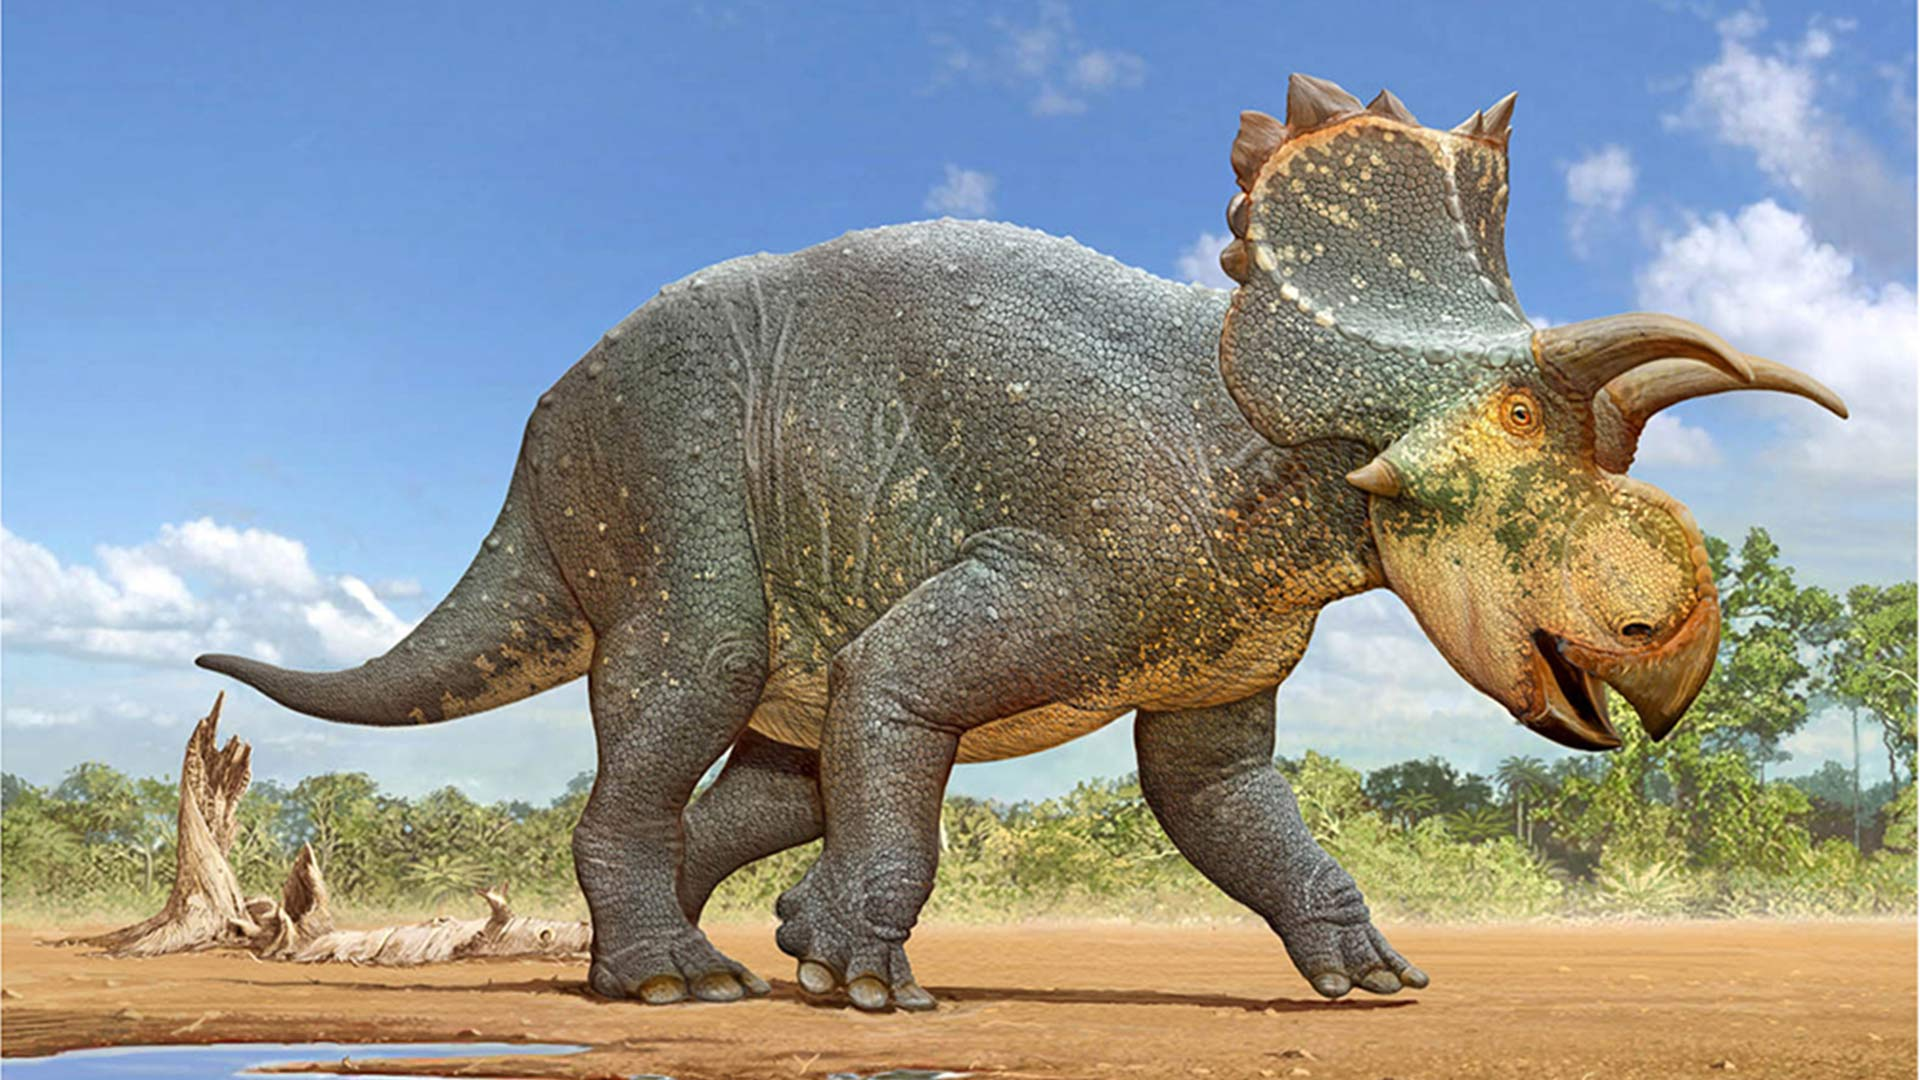 A restoration of Crittendenceratops krzyzanowskii, a new dinosaur species discovered south of Tucson, by Sergey Krasovskiy.